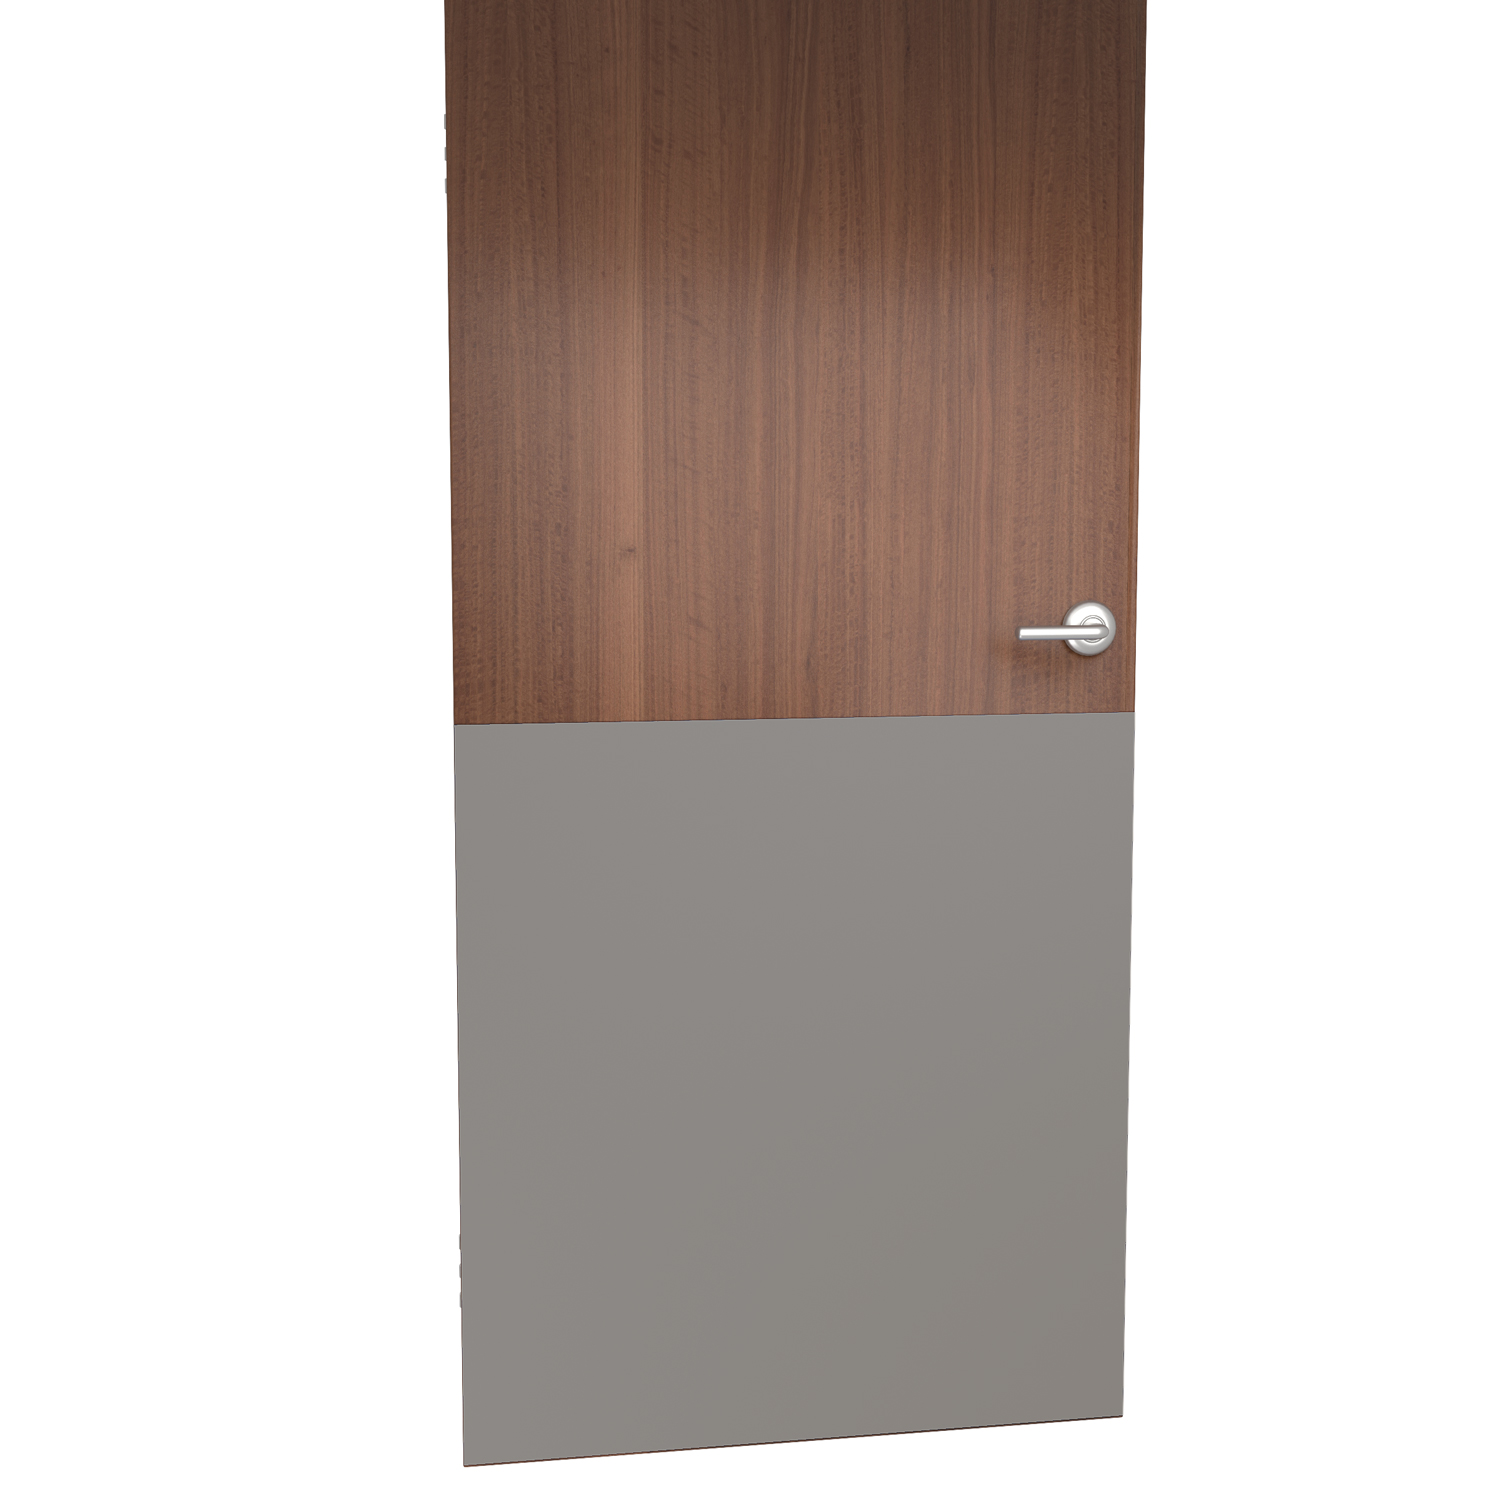 Straight edge kickplate for door in shiprock gray